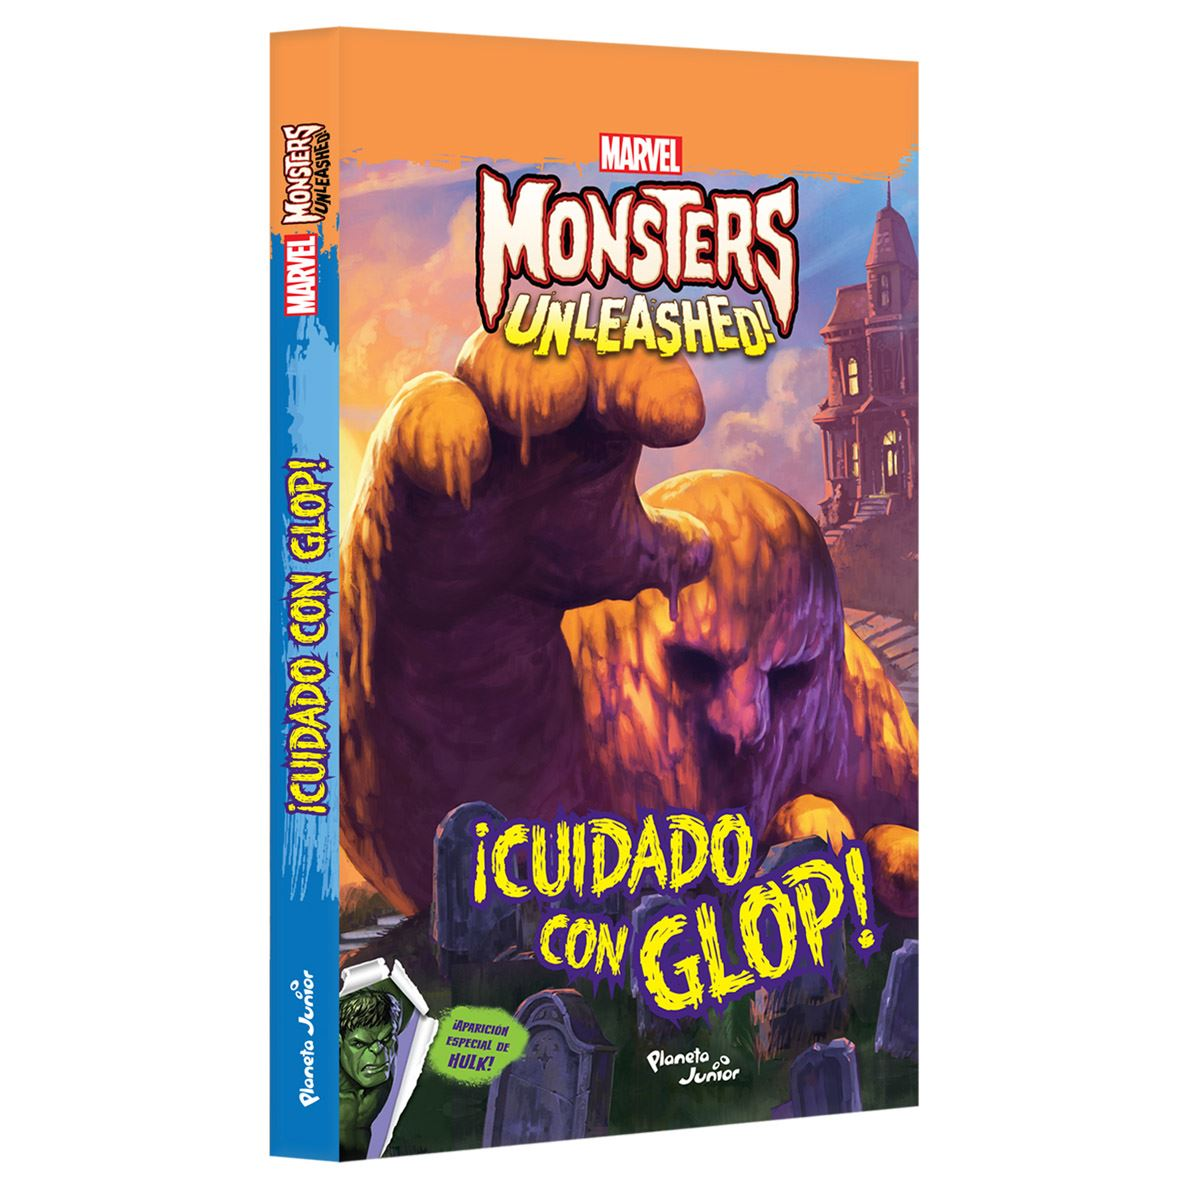 Monsters unleashed. ¡cuidado con glop! Libro - Sanborns